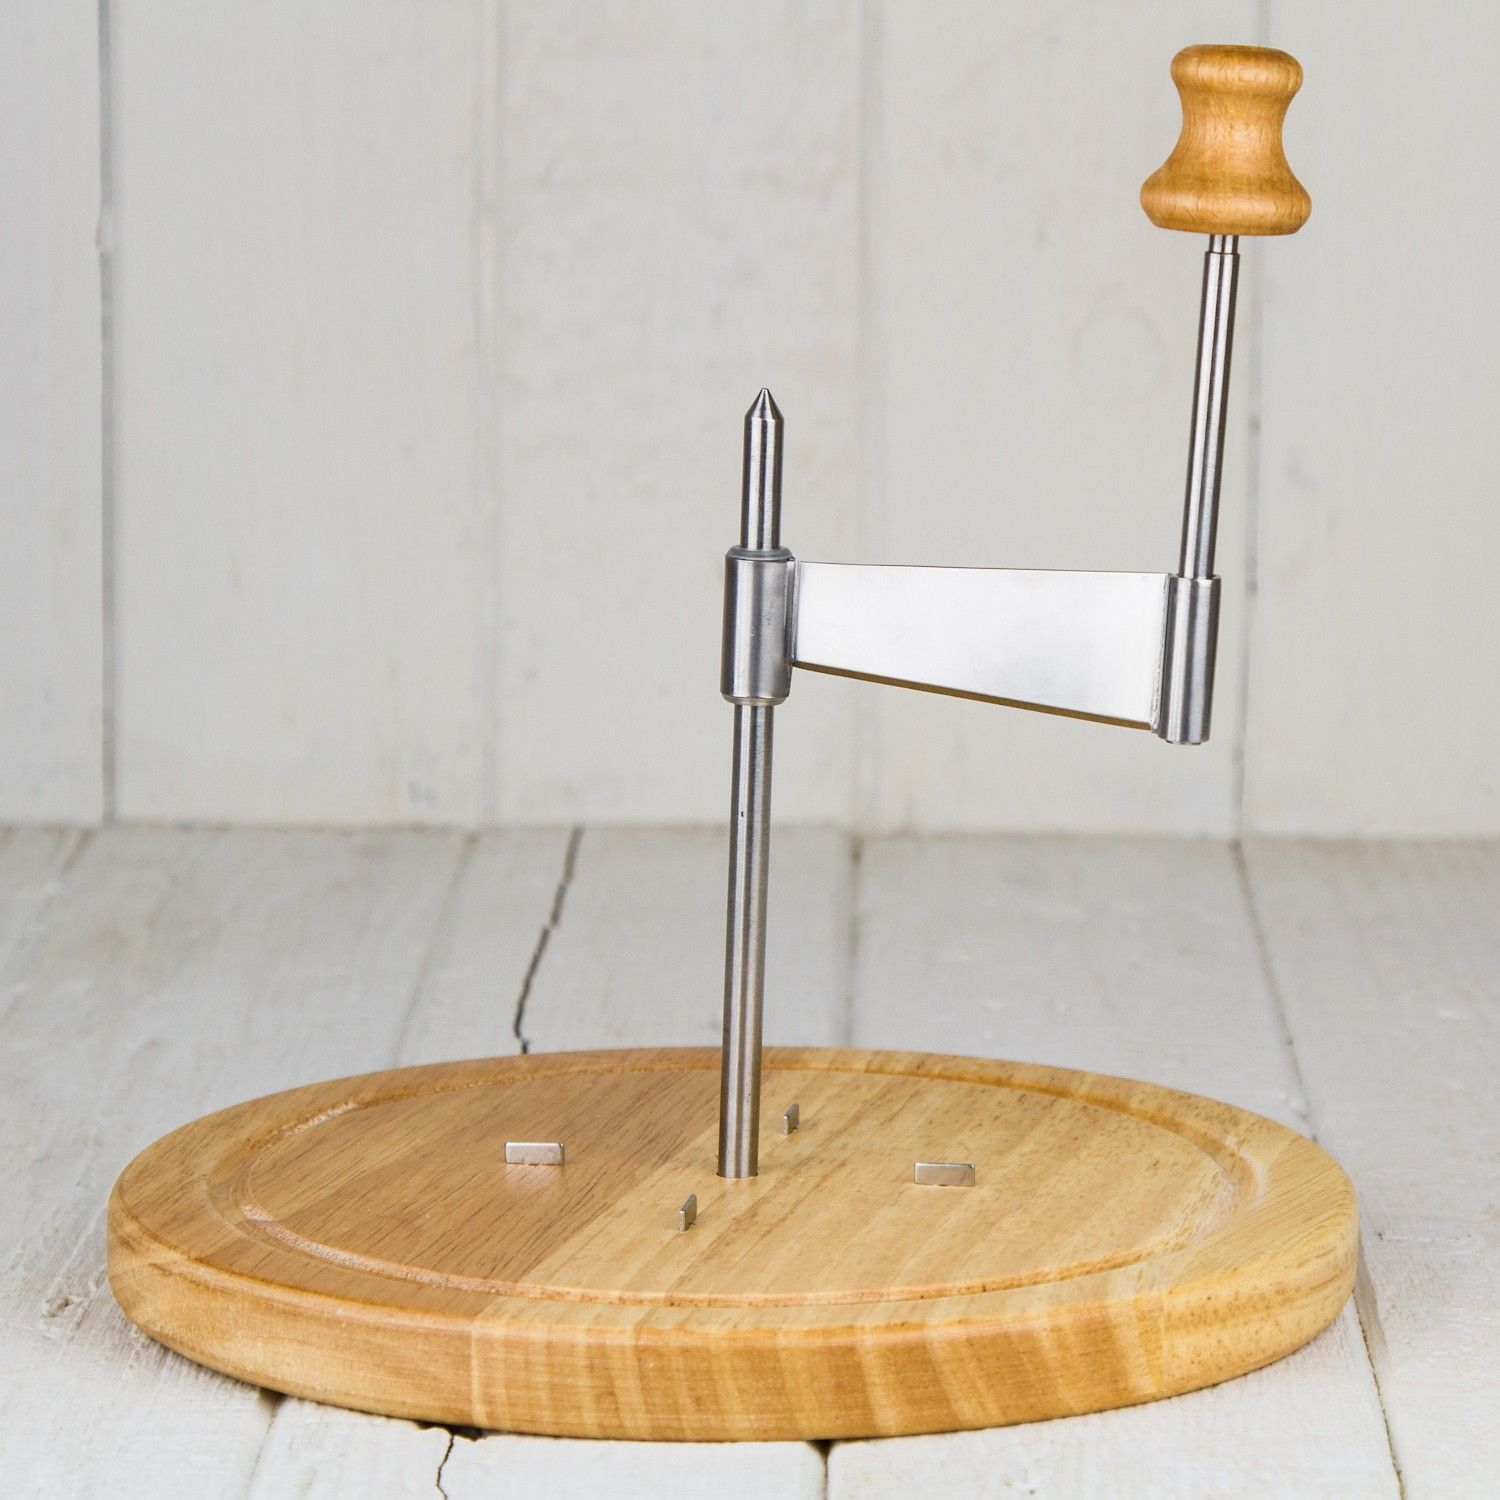 CIRCULAR WOOD CHEESE SLICER | cheese tools | Pinterest | Cheese ...